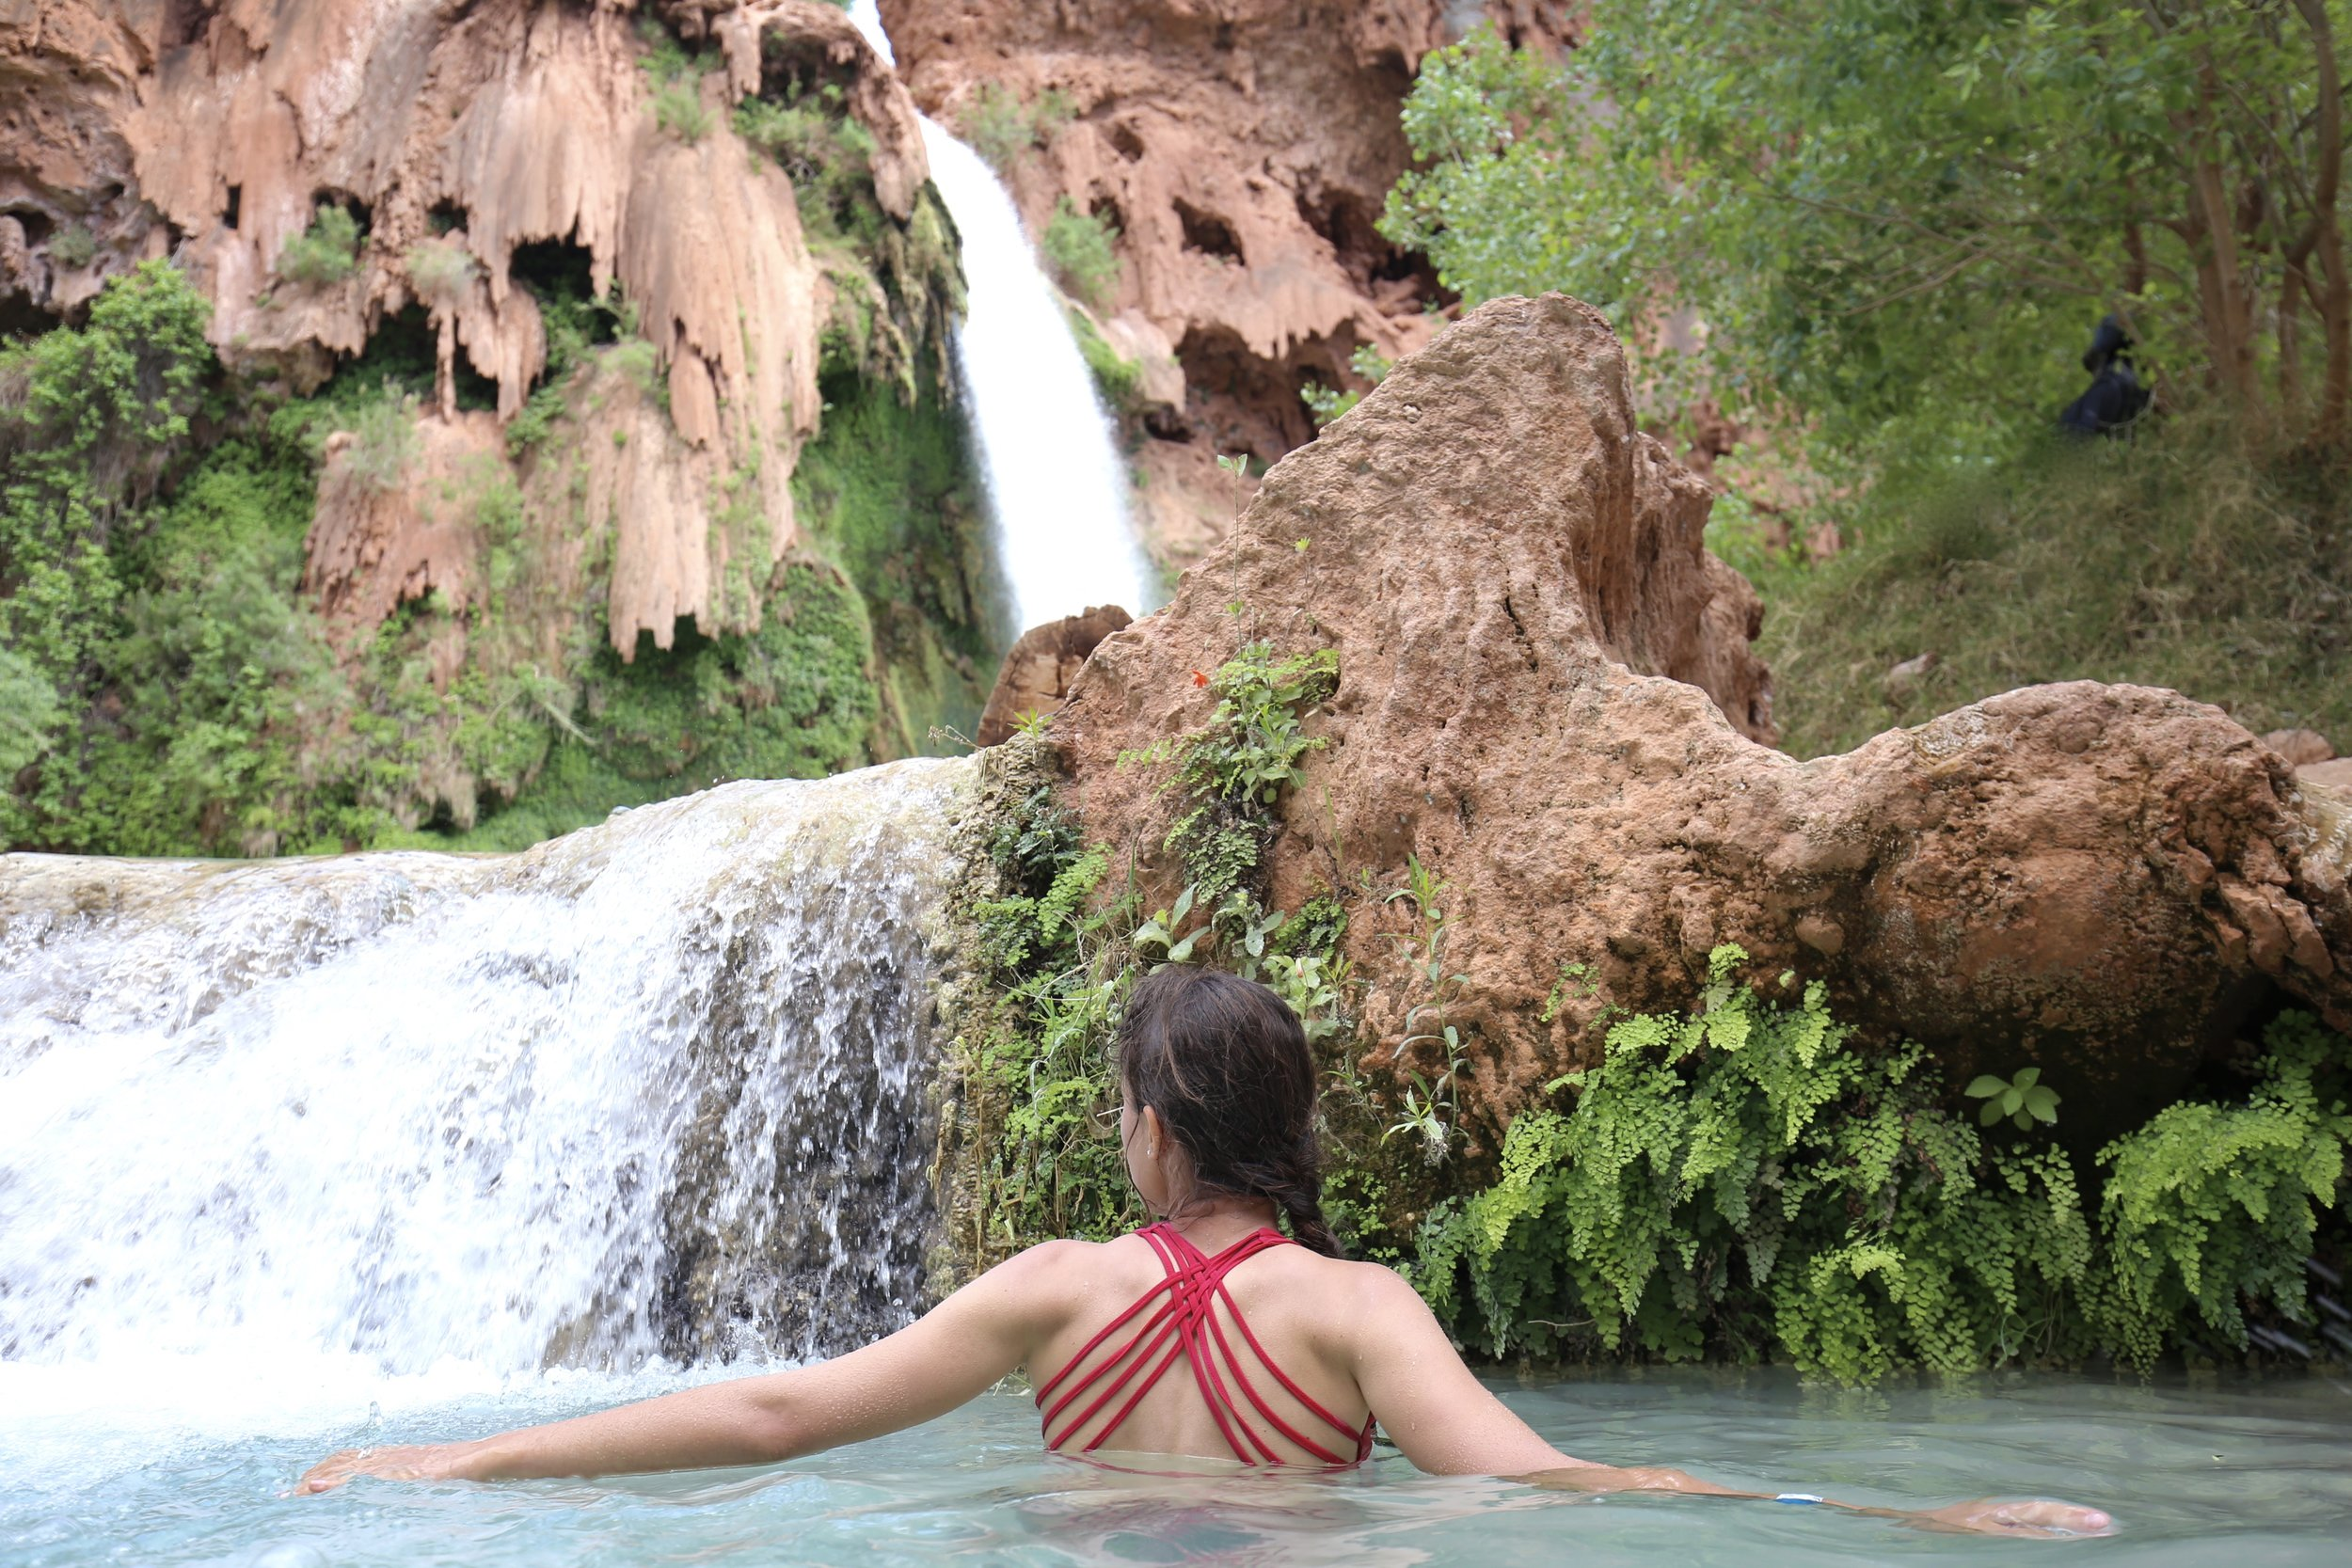 Swimming in the clear blue-green waters of Havasu Falls - real mermaid.